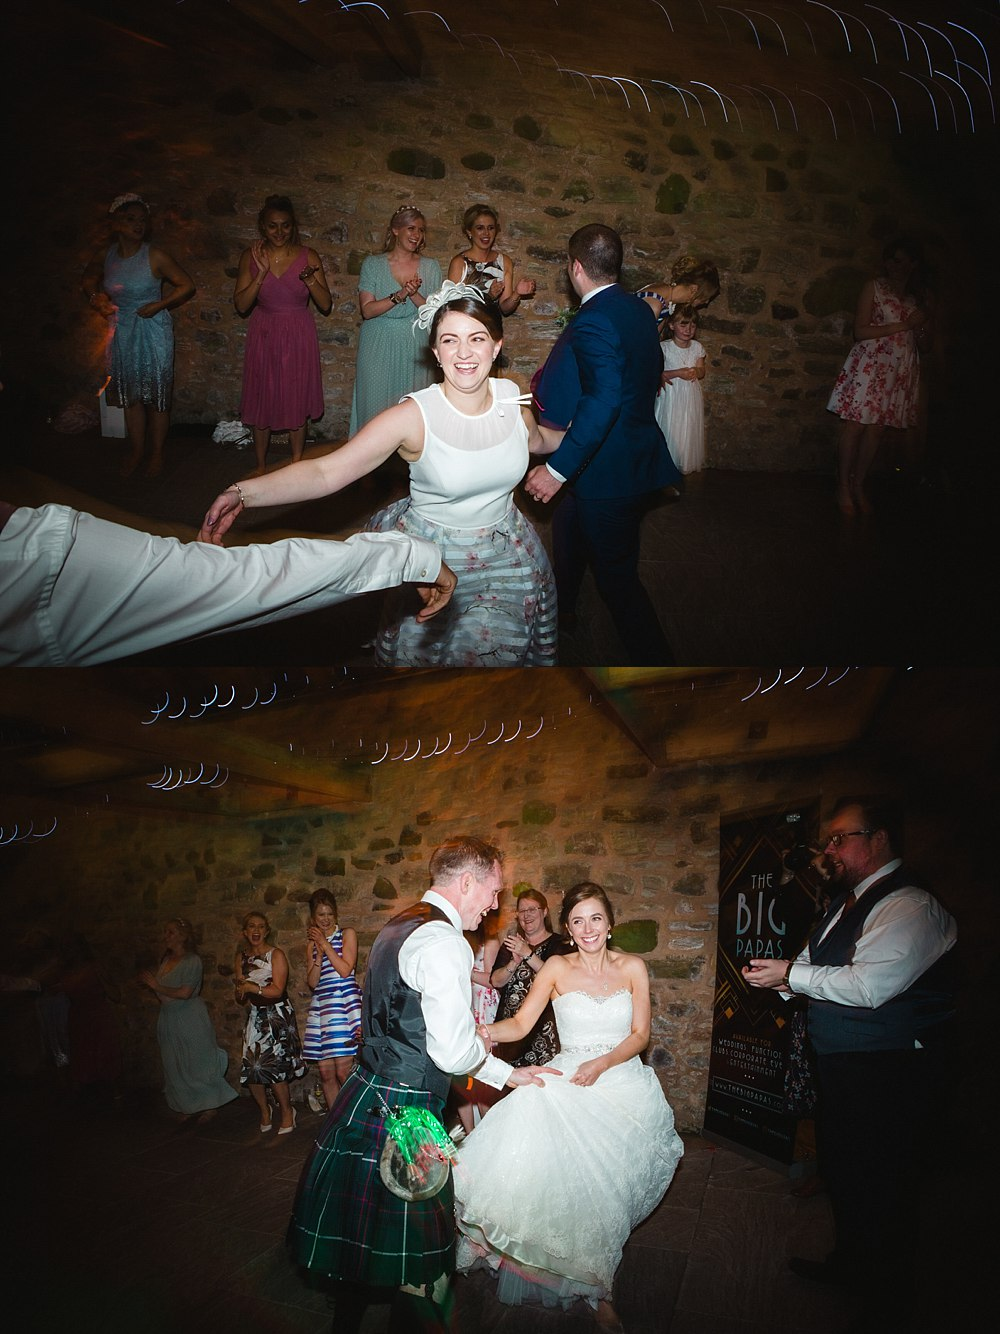 fun and relaxed wedding photography Glasgow 6-49.jpg